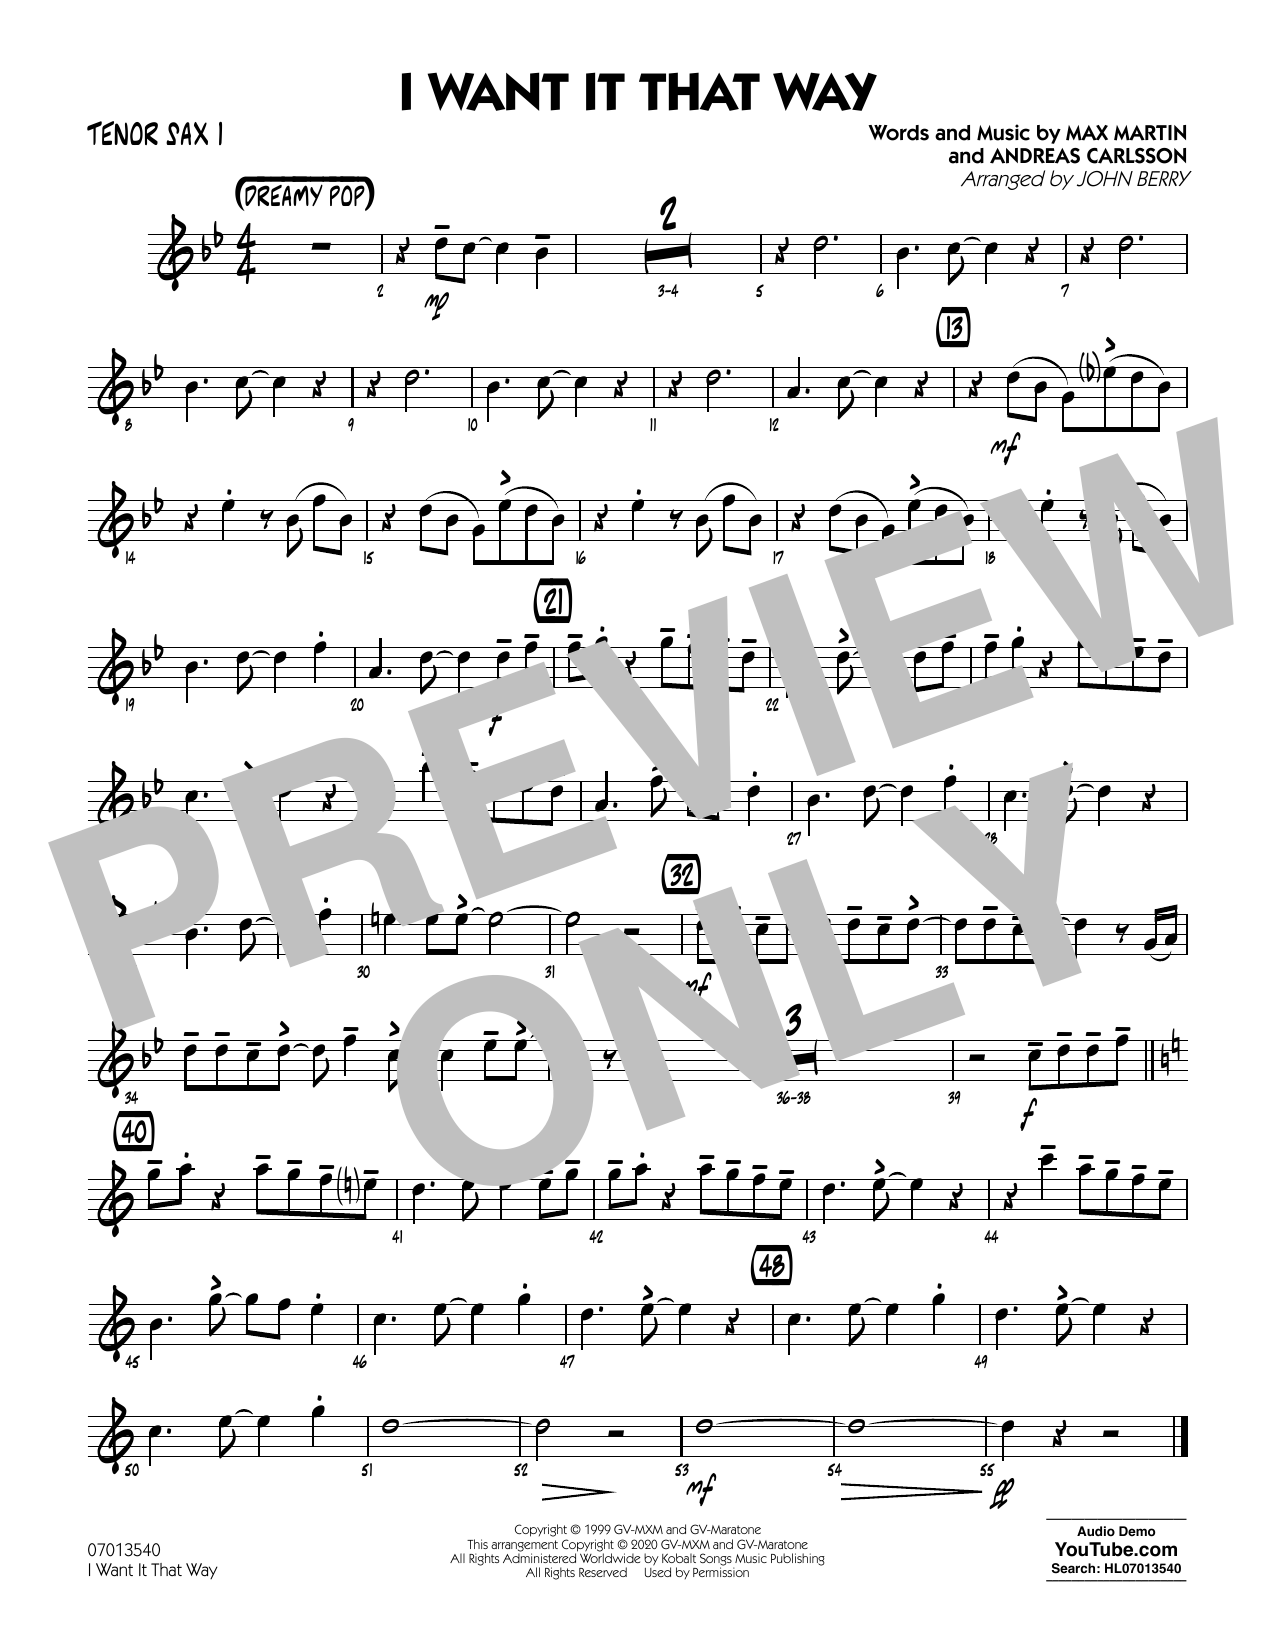 I Want It That Way (arr. John Berry) - Tenor Sax 1 Sheet Music